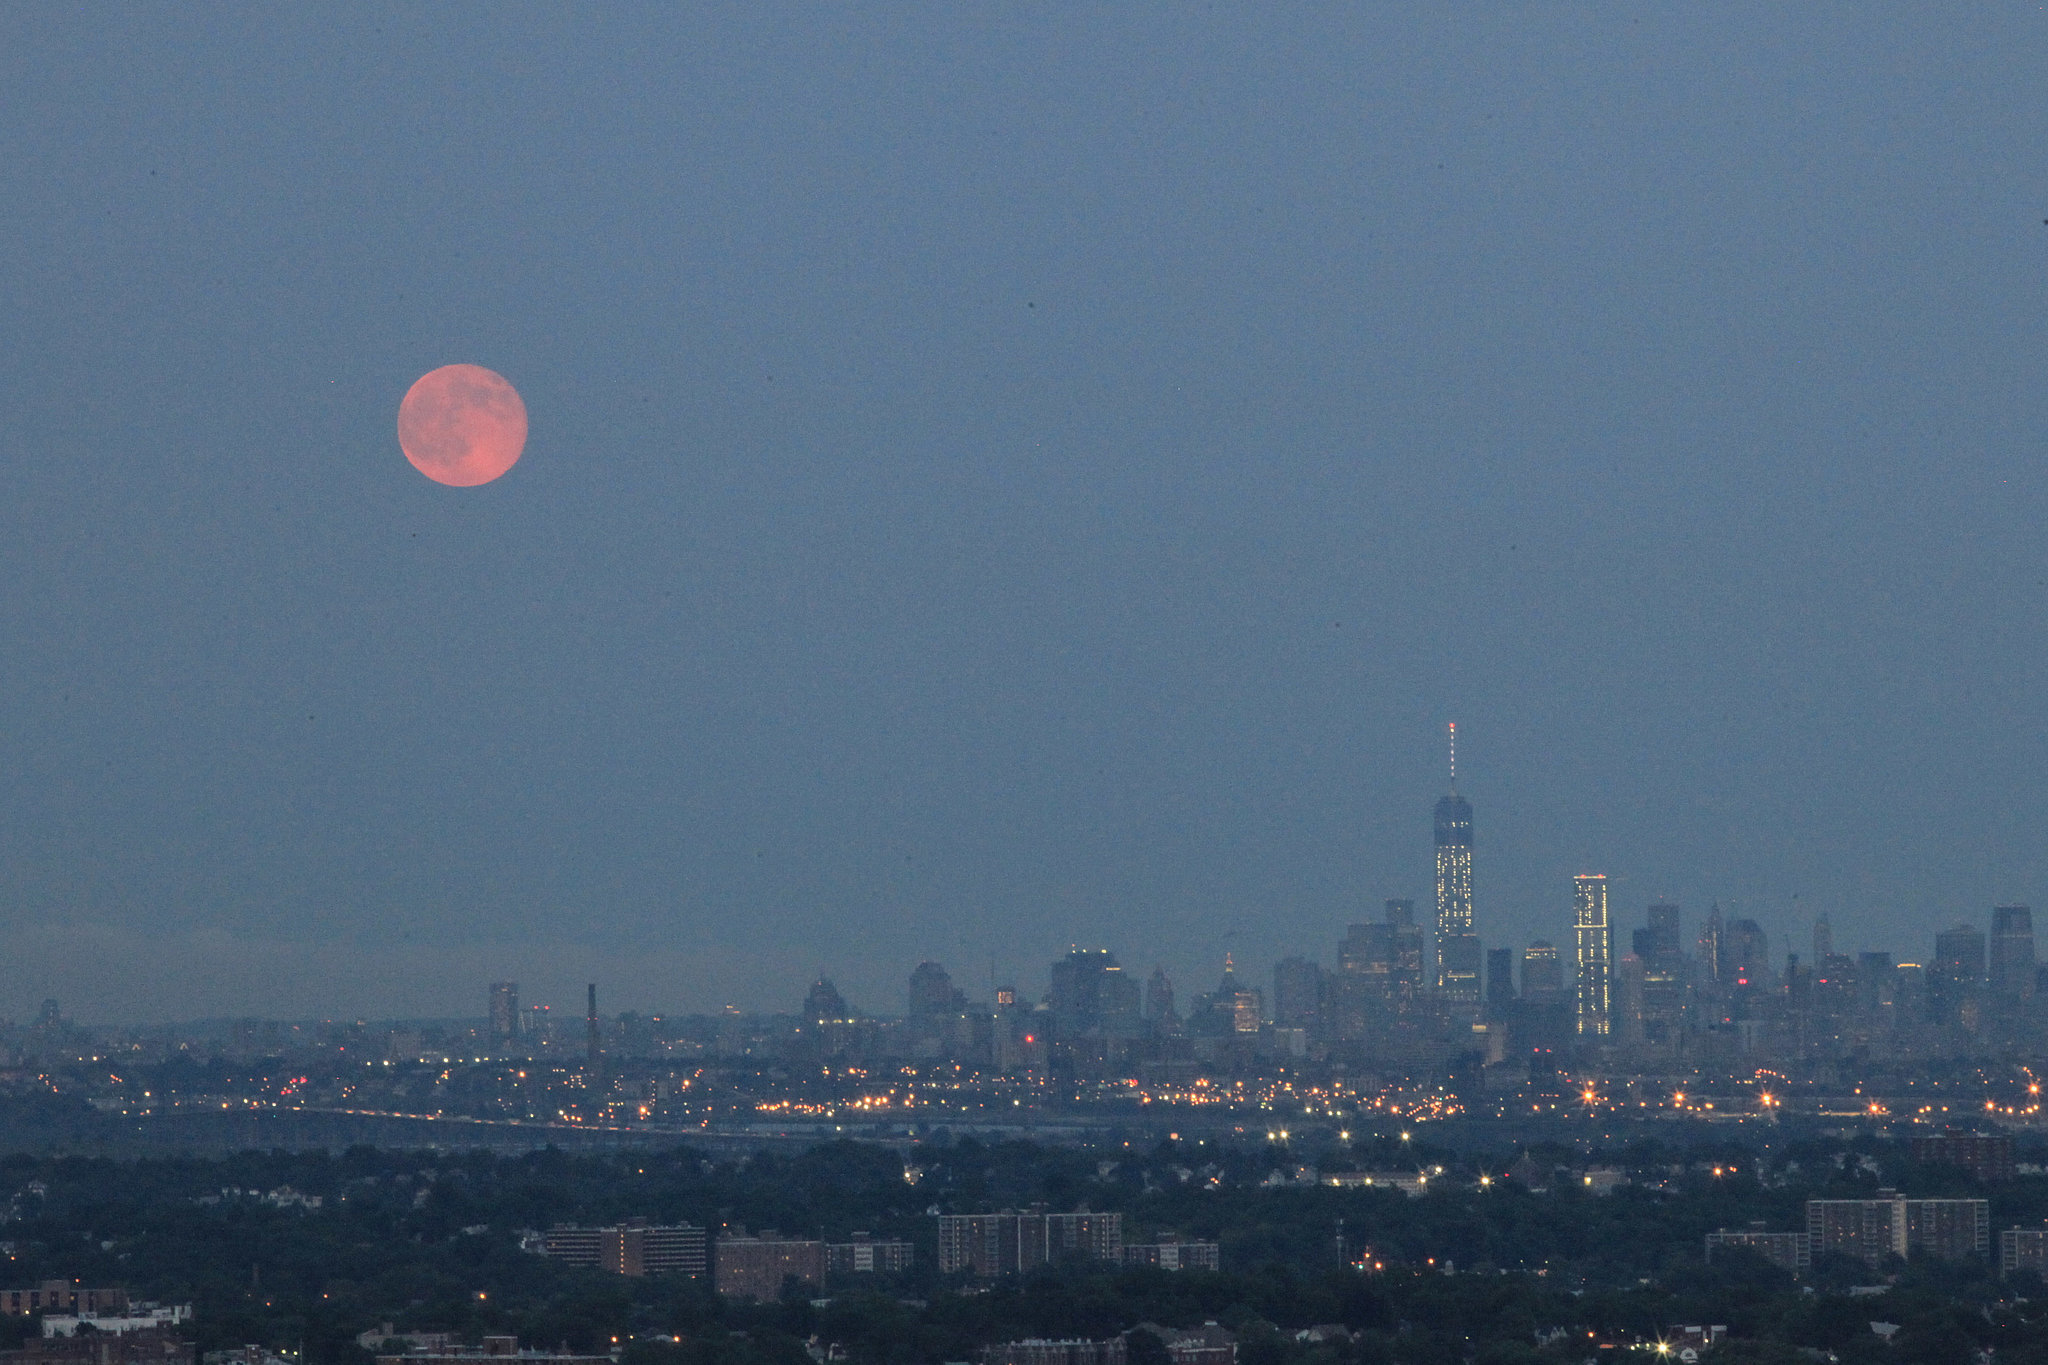 The supermoon shines over the New York City skyline on July 12.